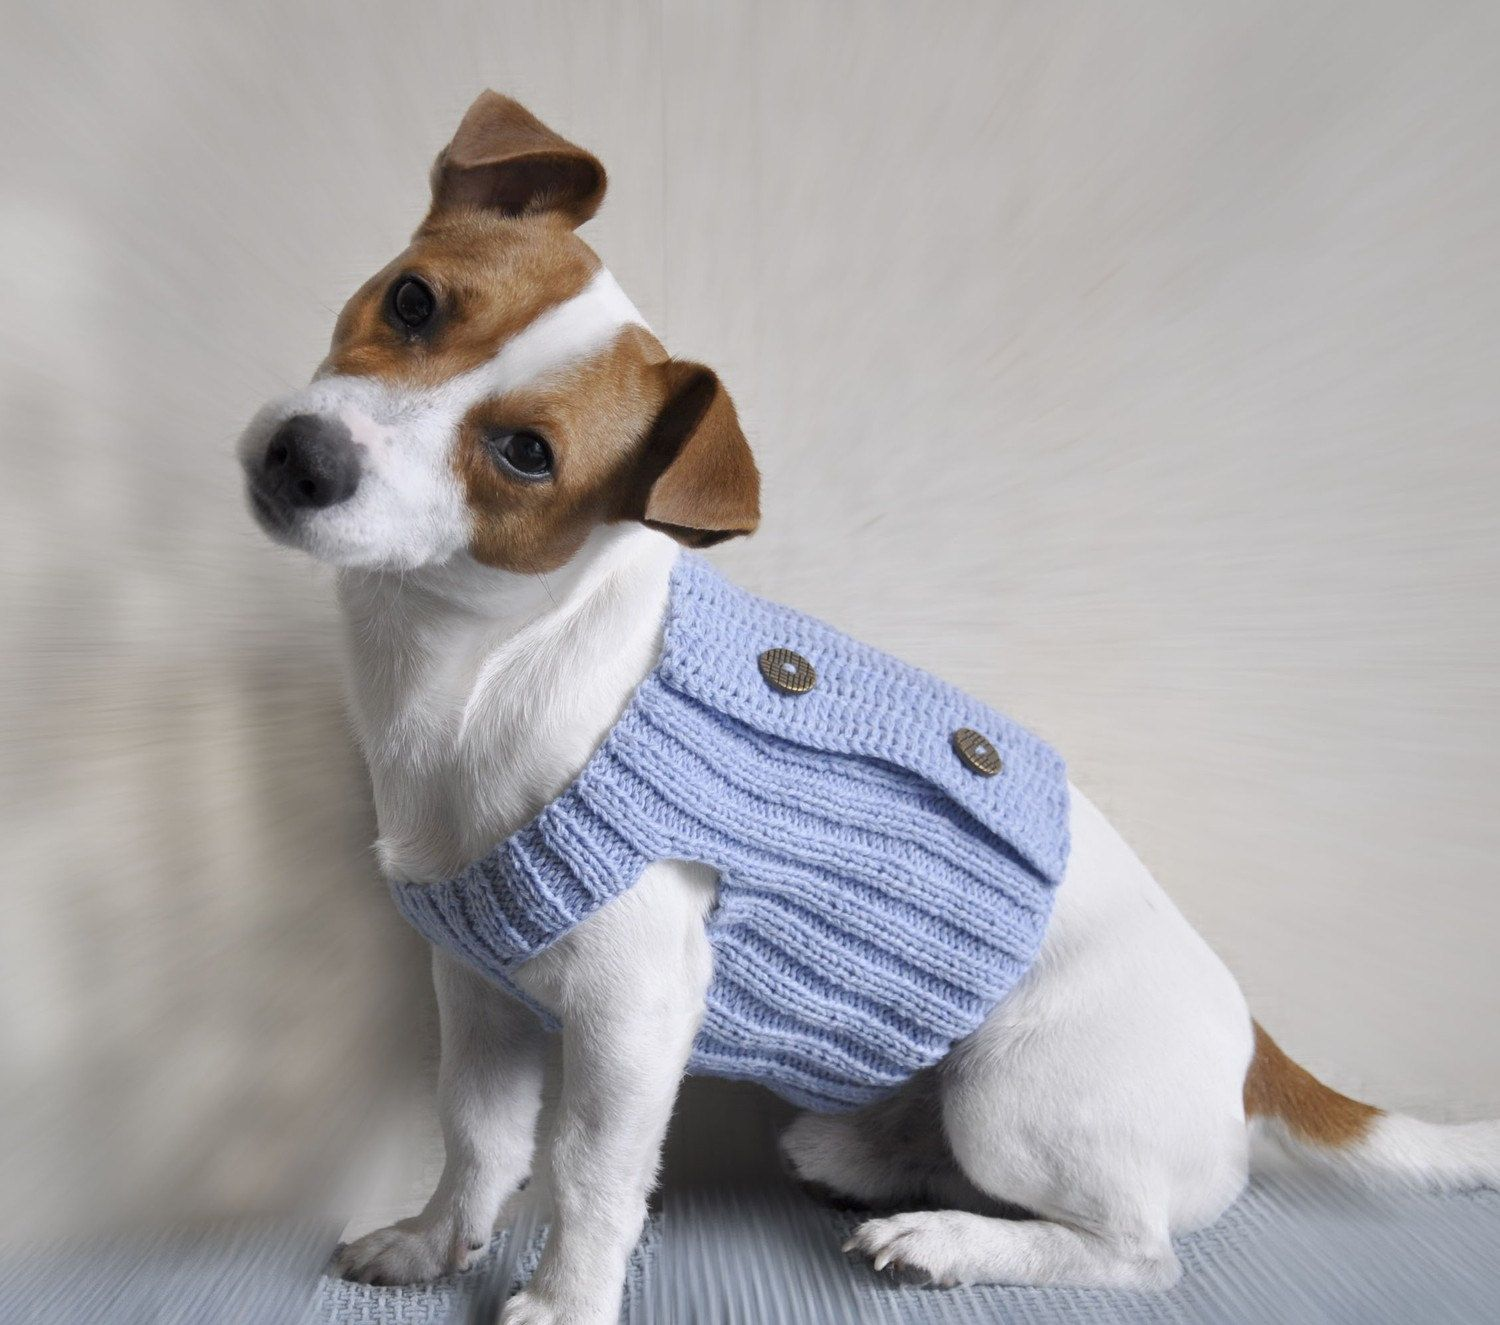 Dog Coat Knitting Pattern : Knitting pattern dog sweater knit